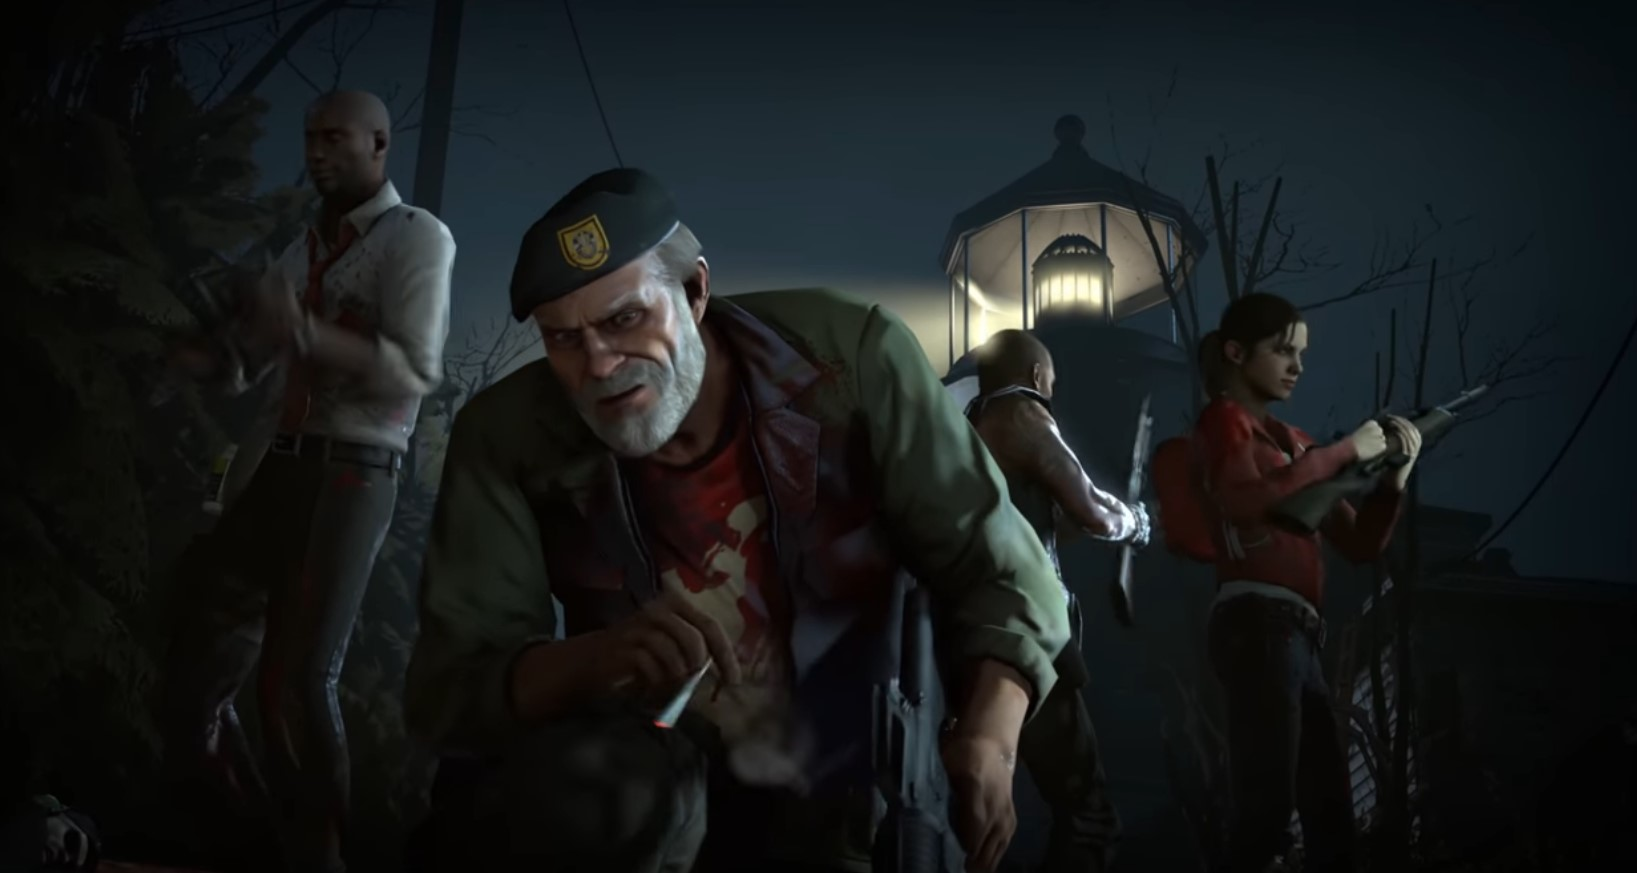 Community-led Left 4 Dead 2: The Last Stand update available next week